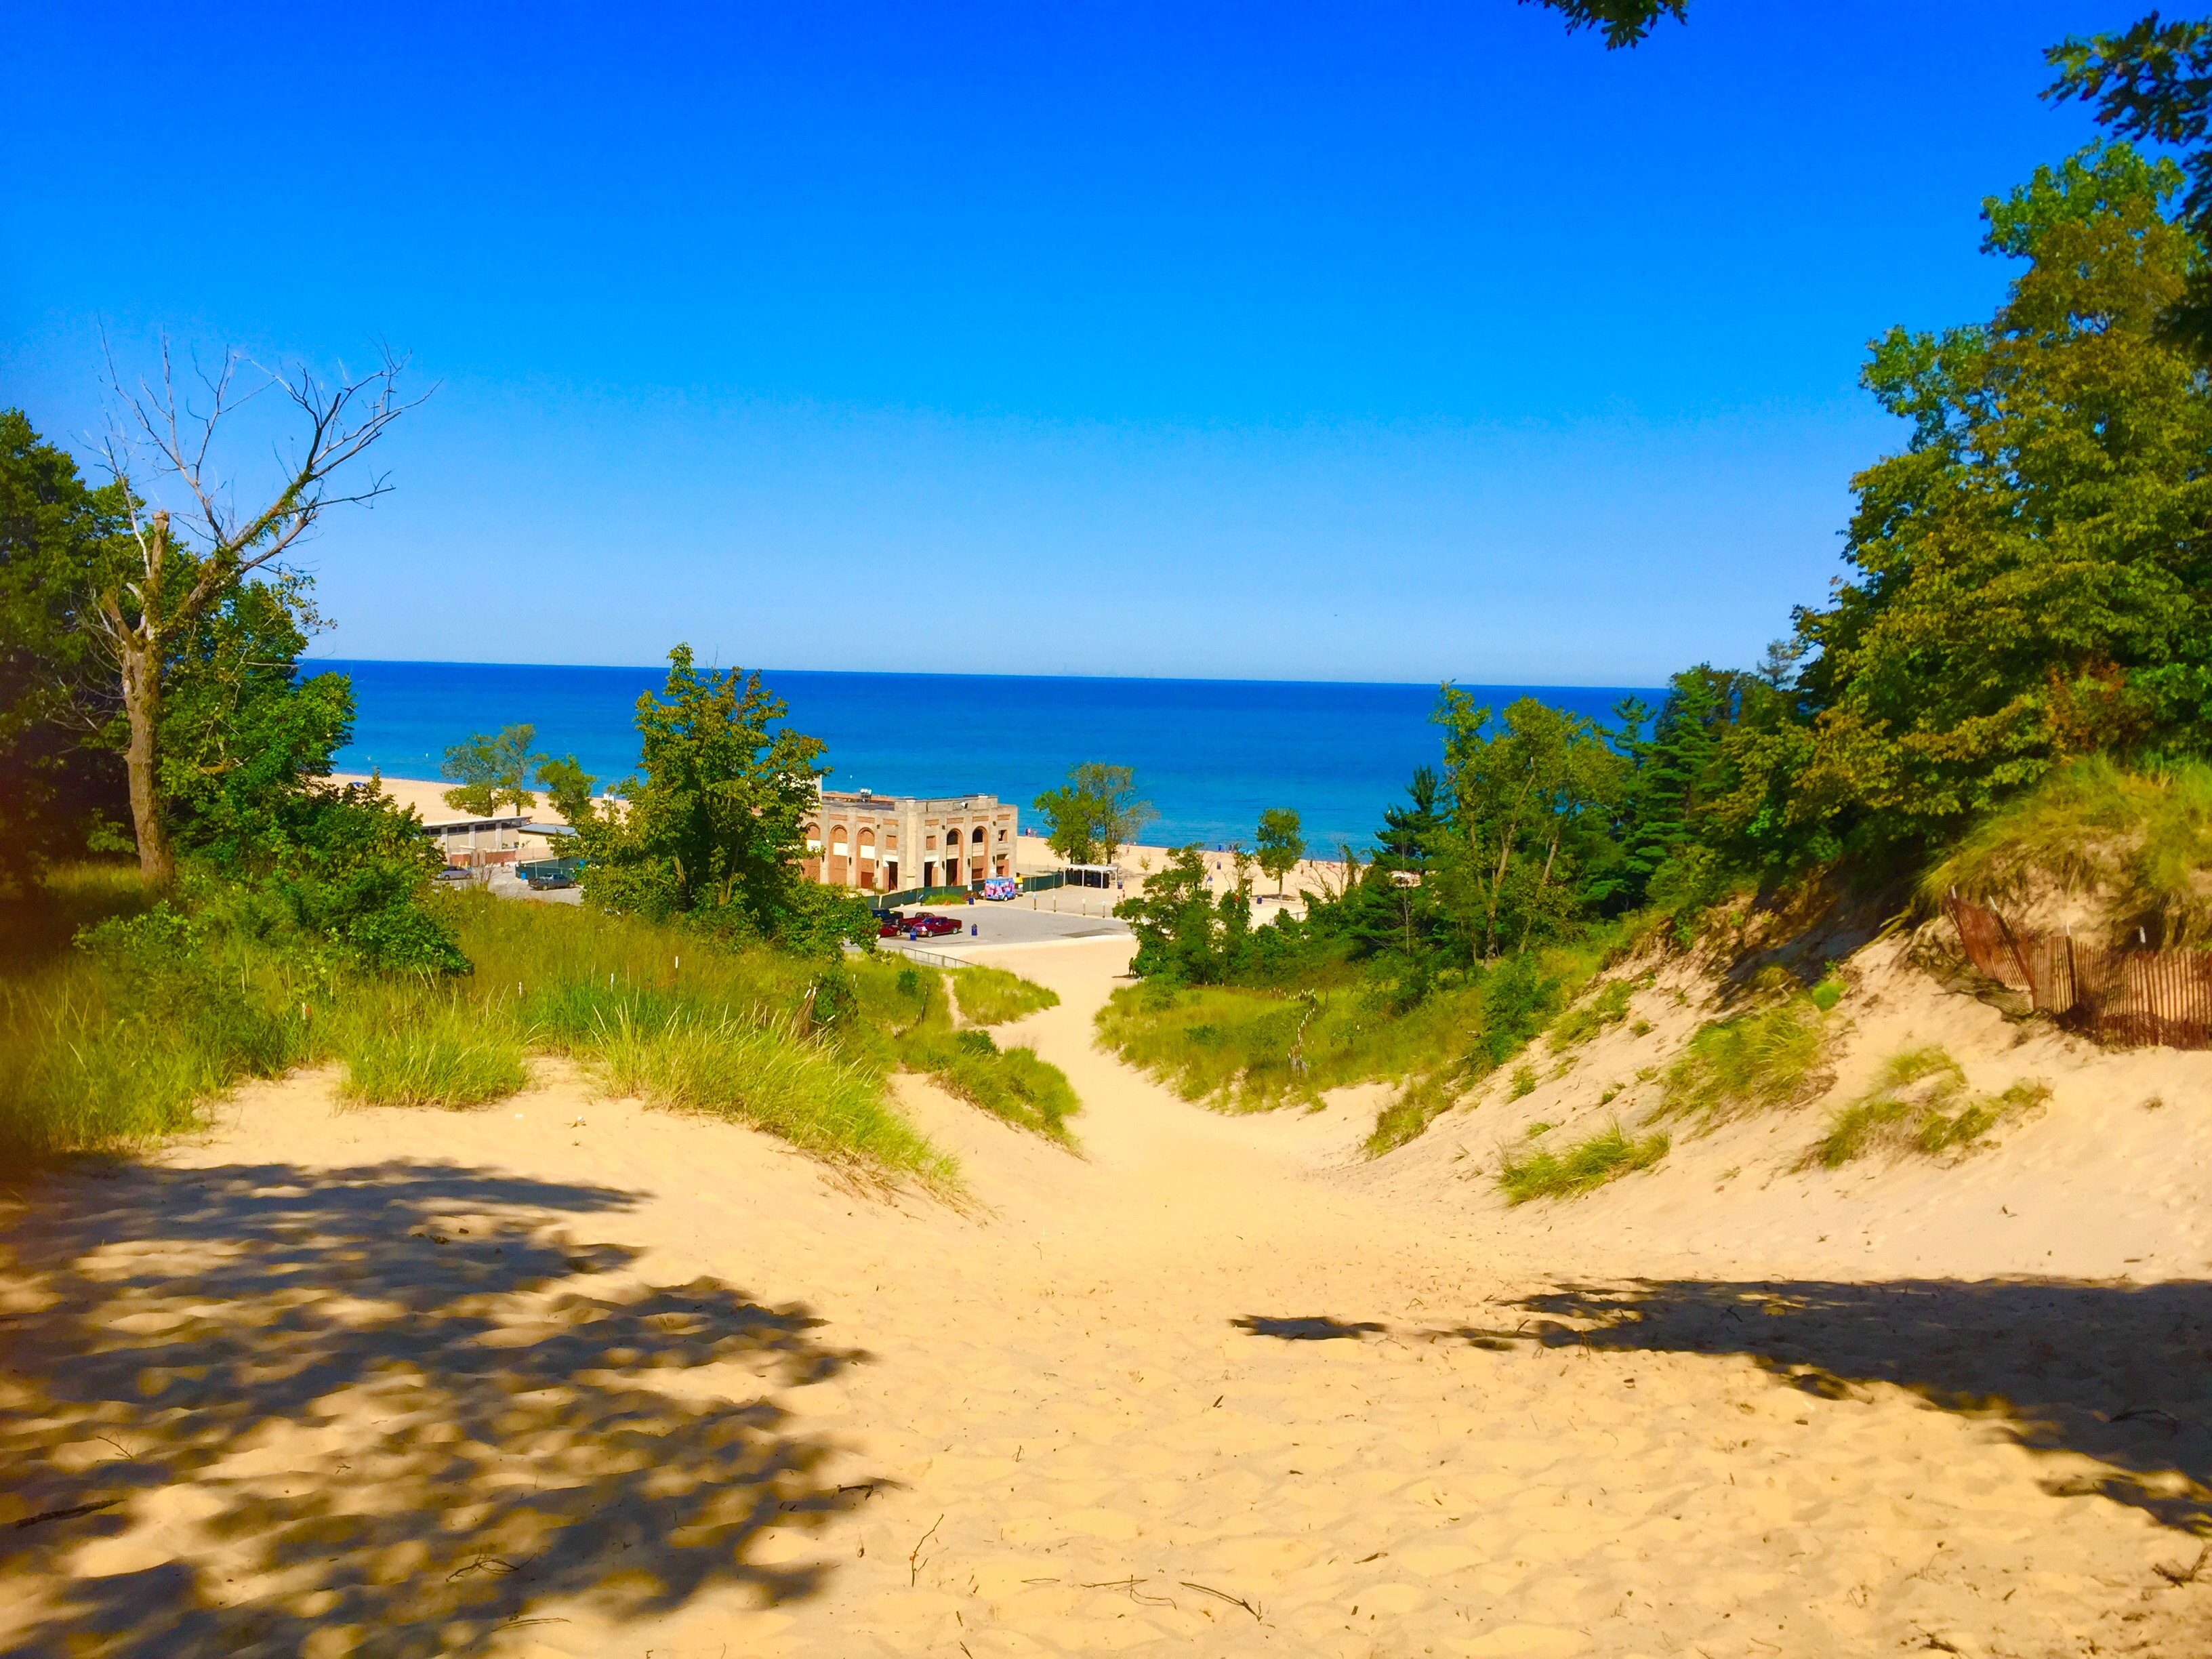 Indiana Dunes 38 Planned Spontaneity